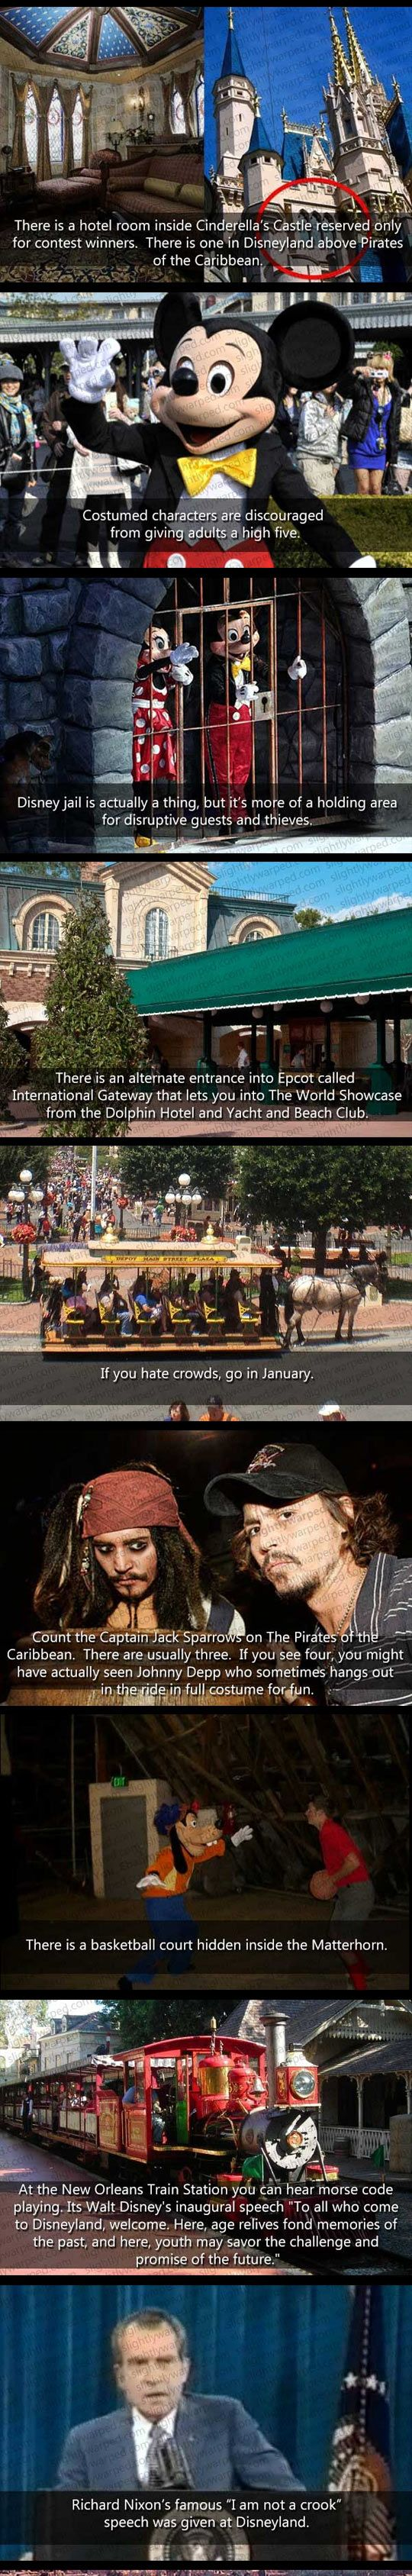 Things You Don't Know About Disney World - The Meta Picture. (I read in a few places Nixon made his speech at the Contemporary. The world showcase entrance in EPCOT is accessible from the yacht and beach clubs, the boardwalk, the dolphin and the swan.)